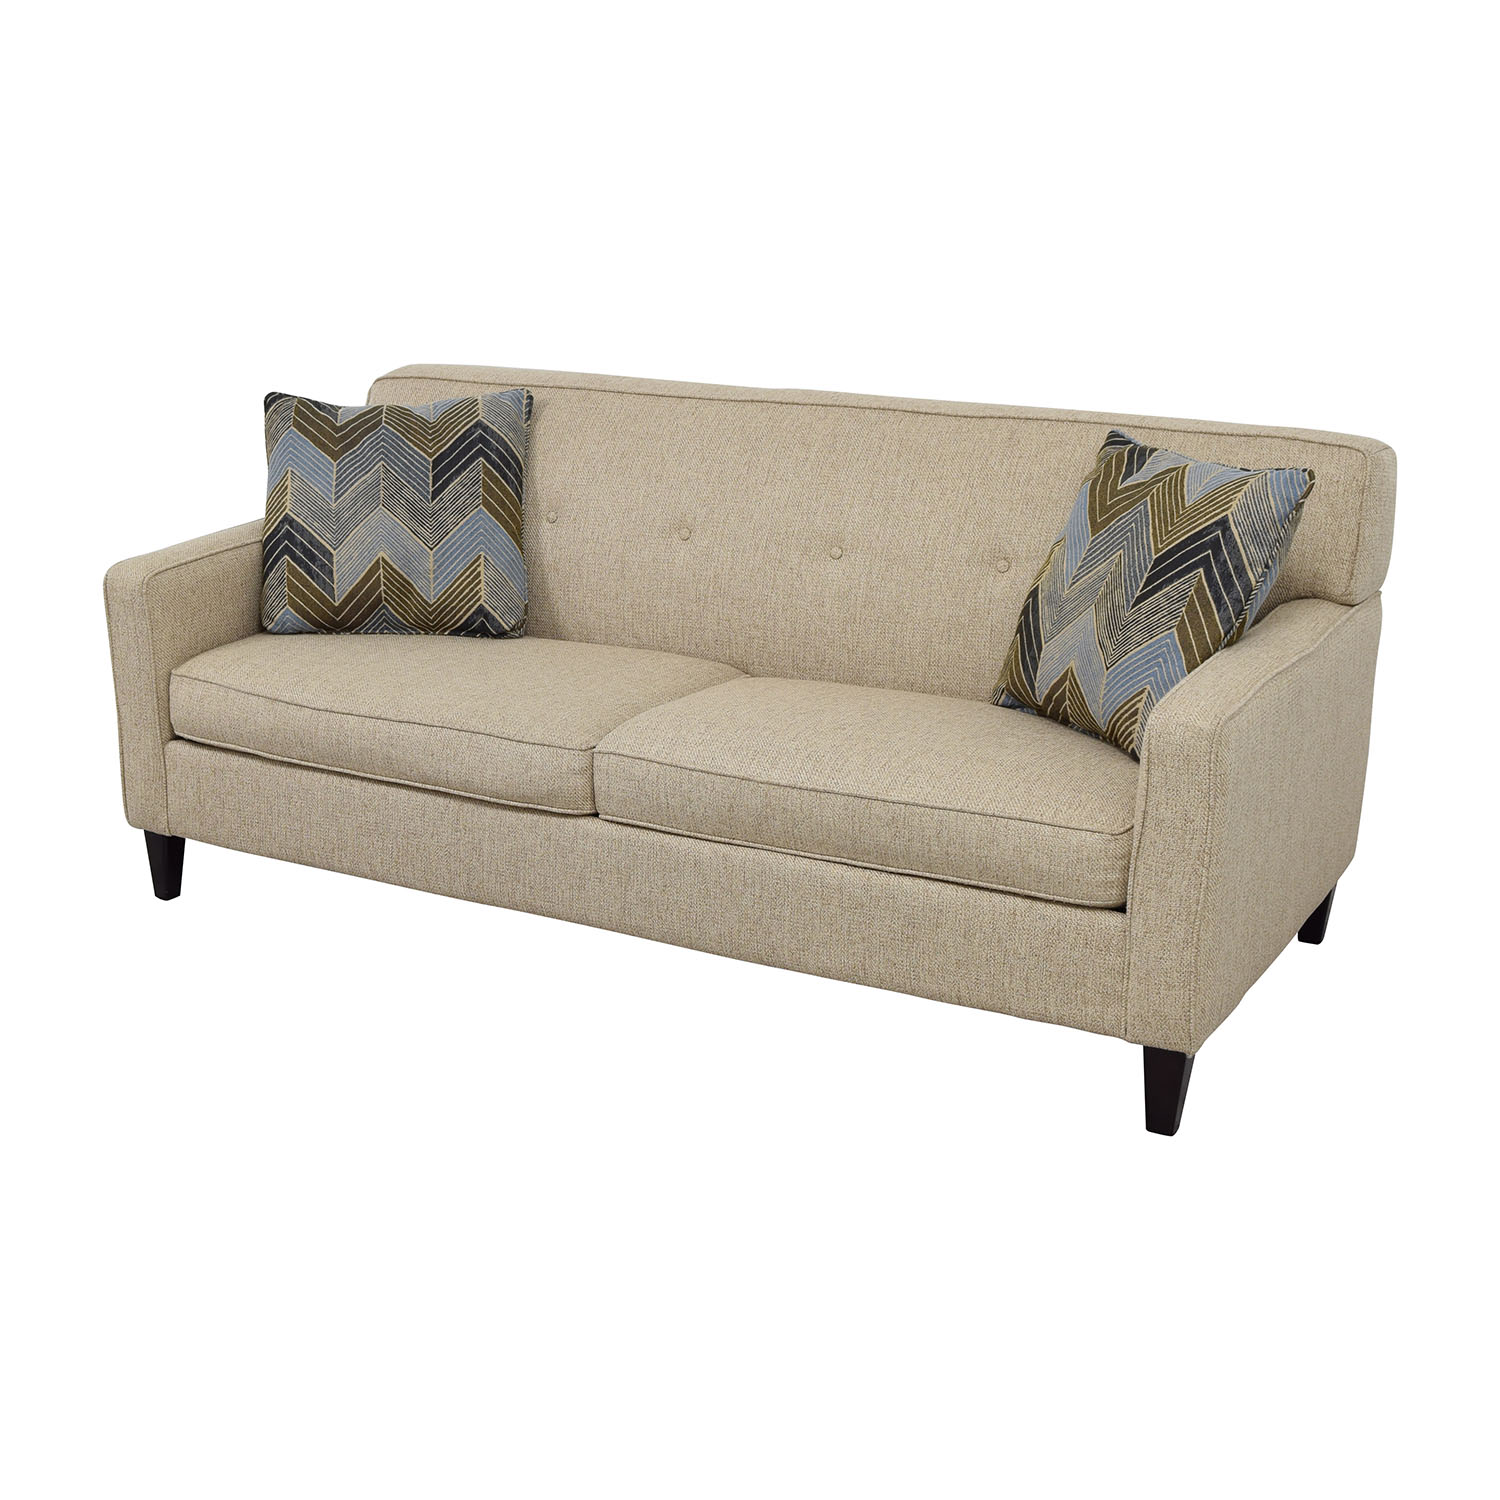 buy Raymour & Flanigan Tan Maddox Sofa Raymour & Flanigan